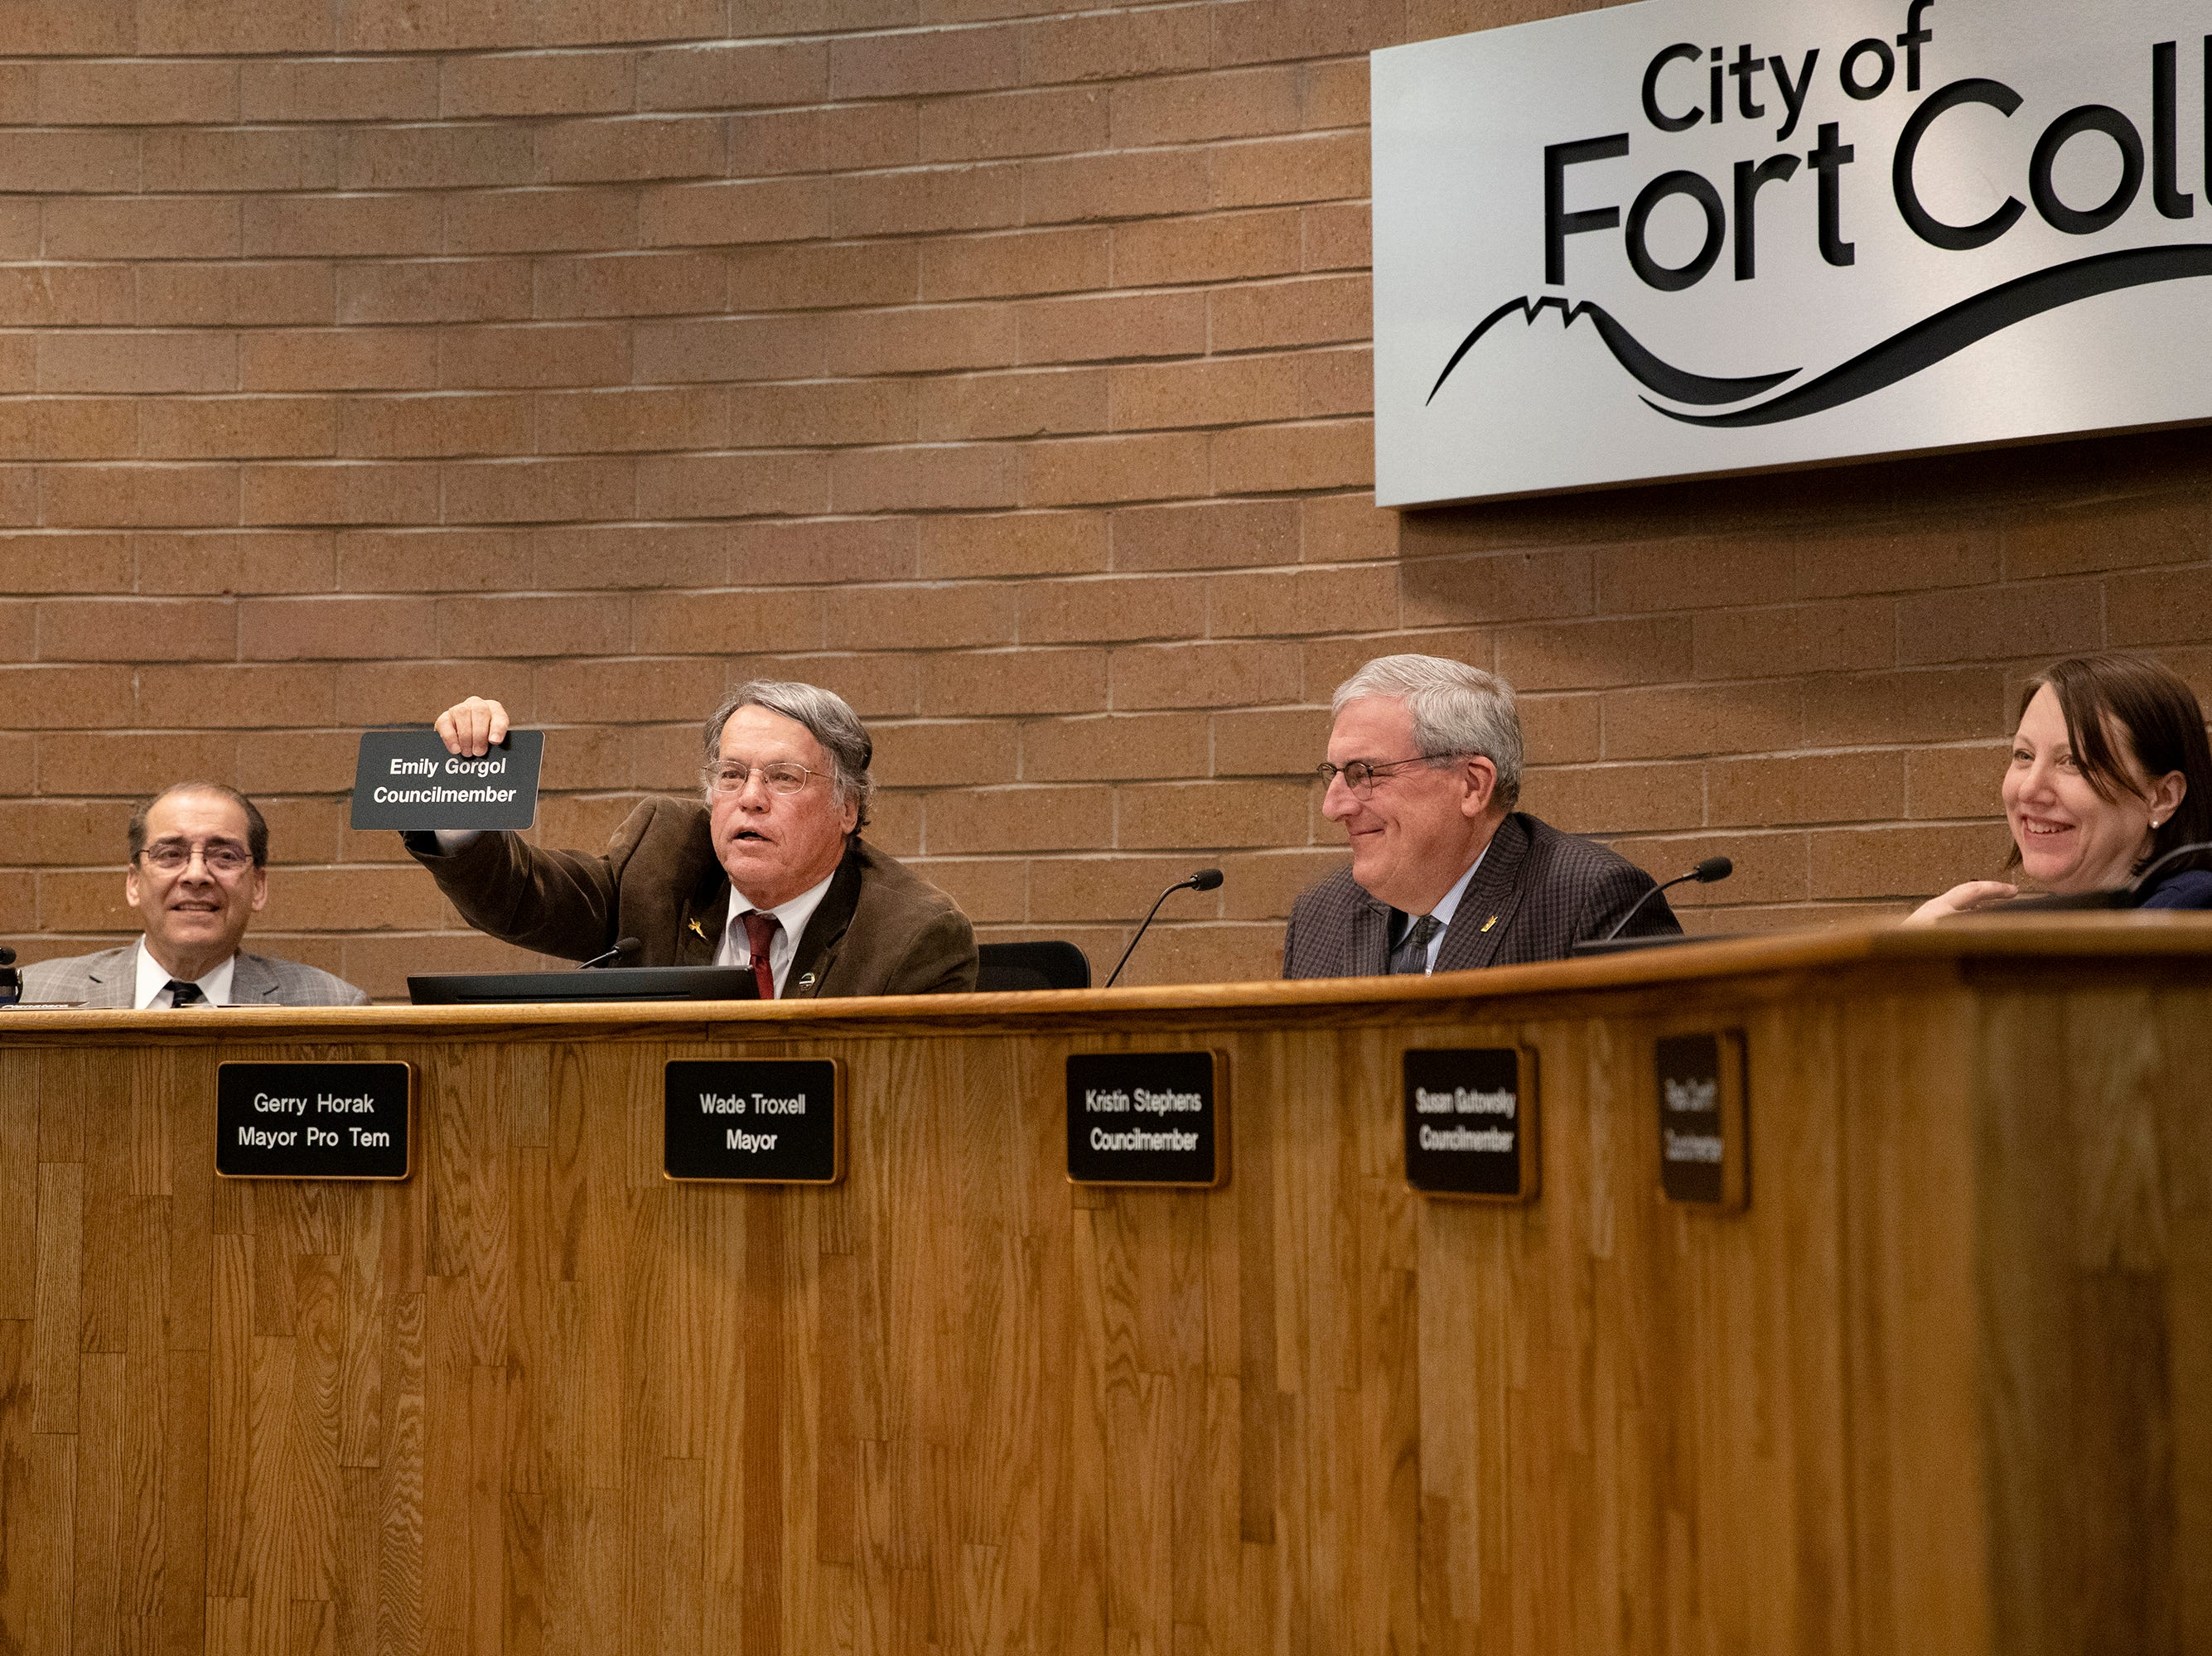 Former City Council member Gerry Horak makes a joke about Emily Gorgol taking his seat on the City Council during his outgoing remarks at City Hall on April 23.